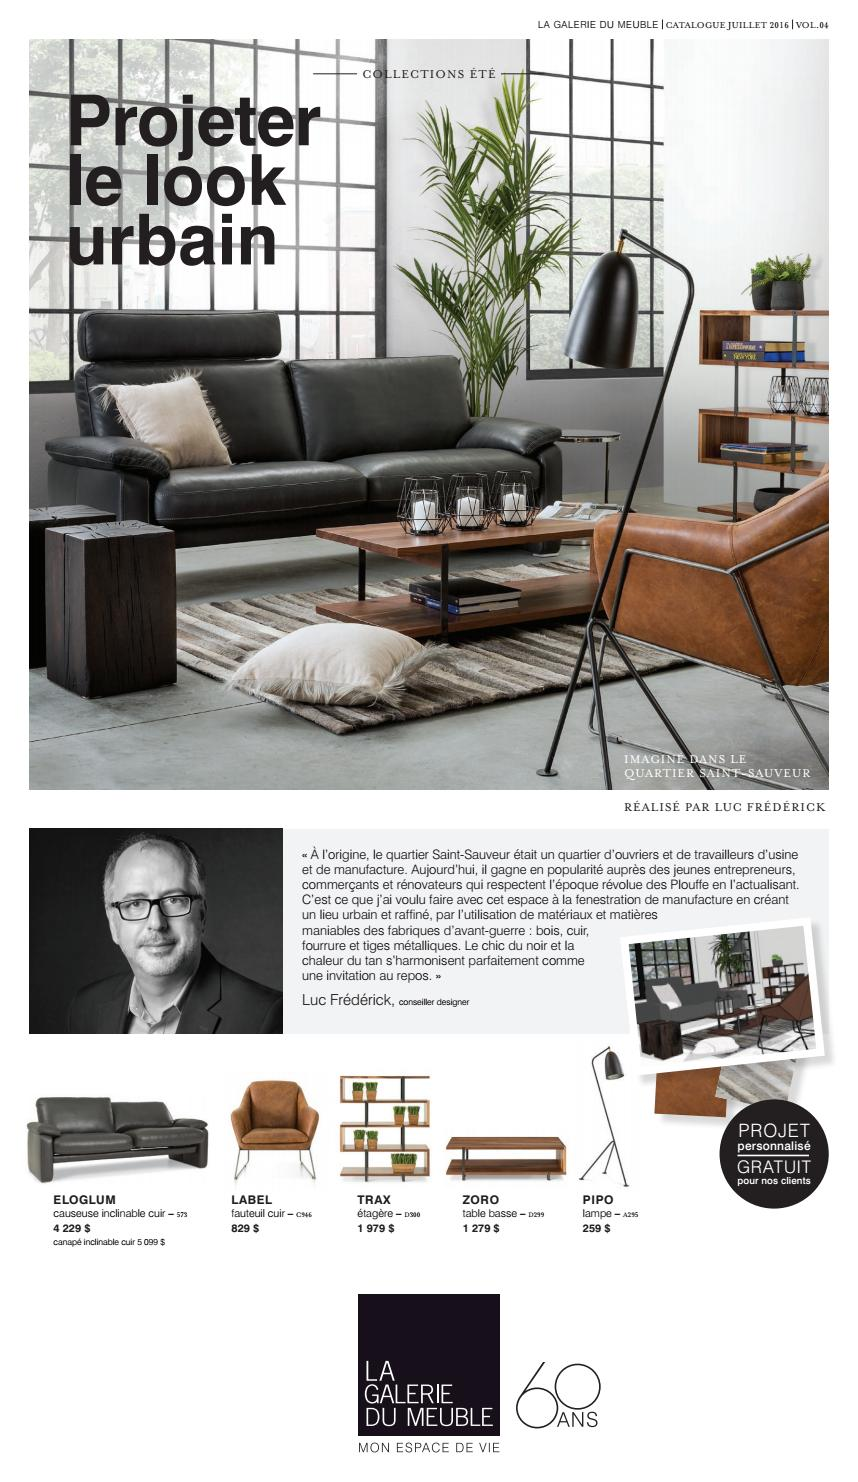 la galerie du meuble catalogue vol 4 by la galerie du meuble issuu. Black Bedroom Furniture Sets. Home Design Ideas